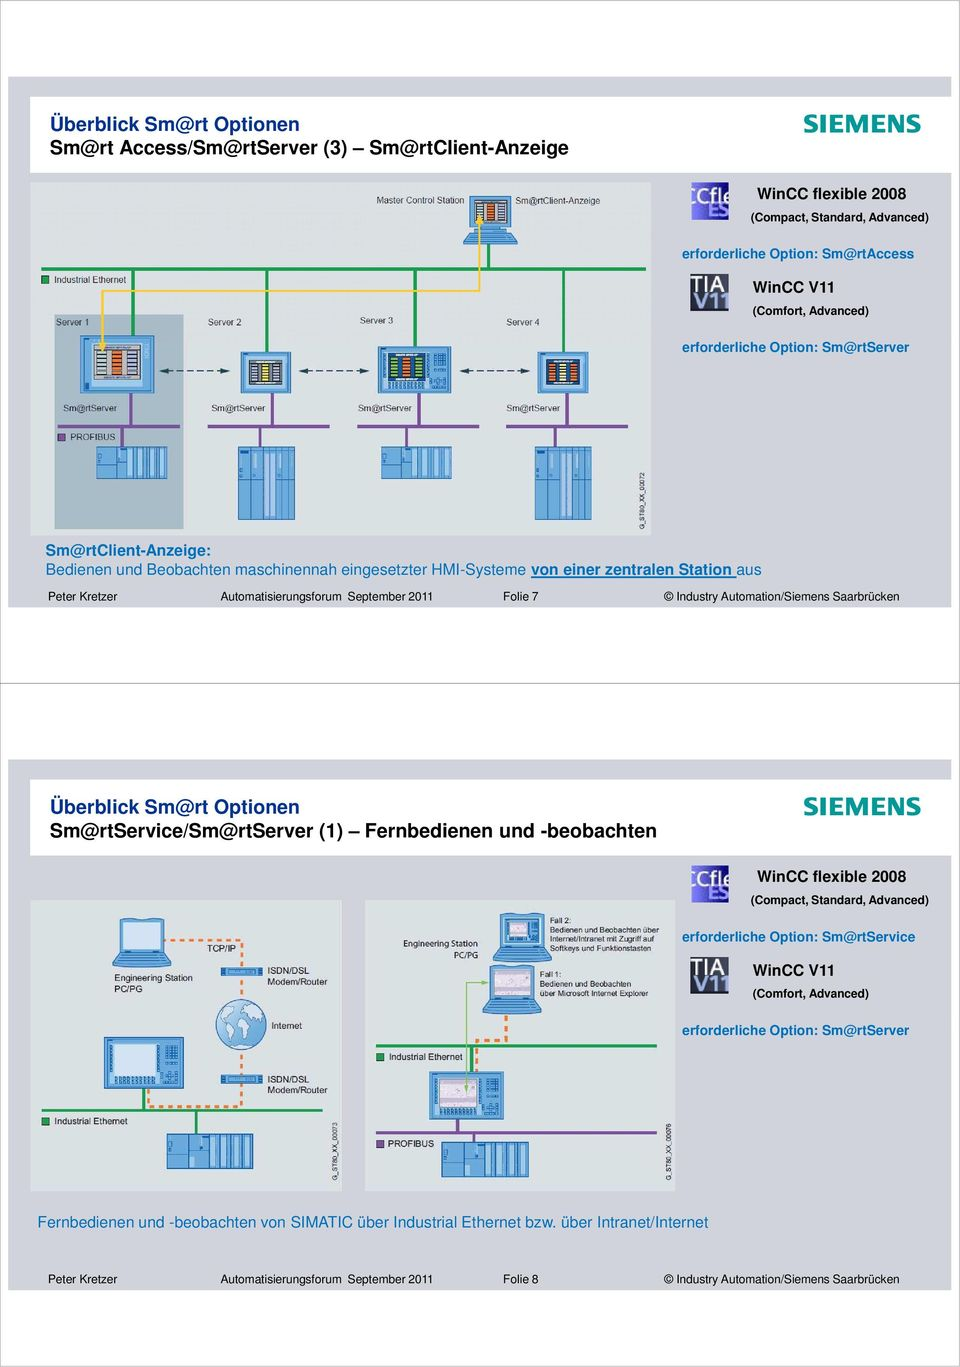 Automation/Siemens Saarbrücken Sm@rtService/Sm@rtServer () Fernbedienen und -beobachten WinCC flexible 2008 (Compact, Standard, Advanced) erforderliche Option: Sm@rtService (Comfort, Advanced)